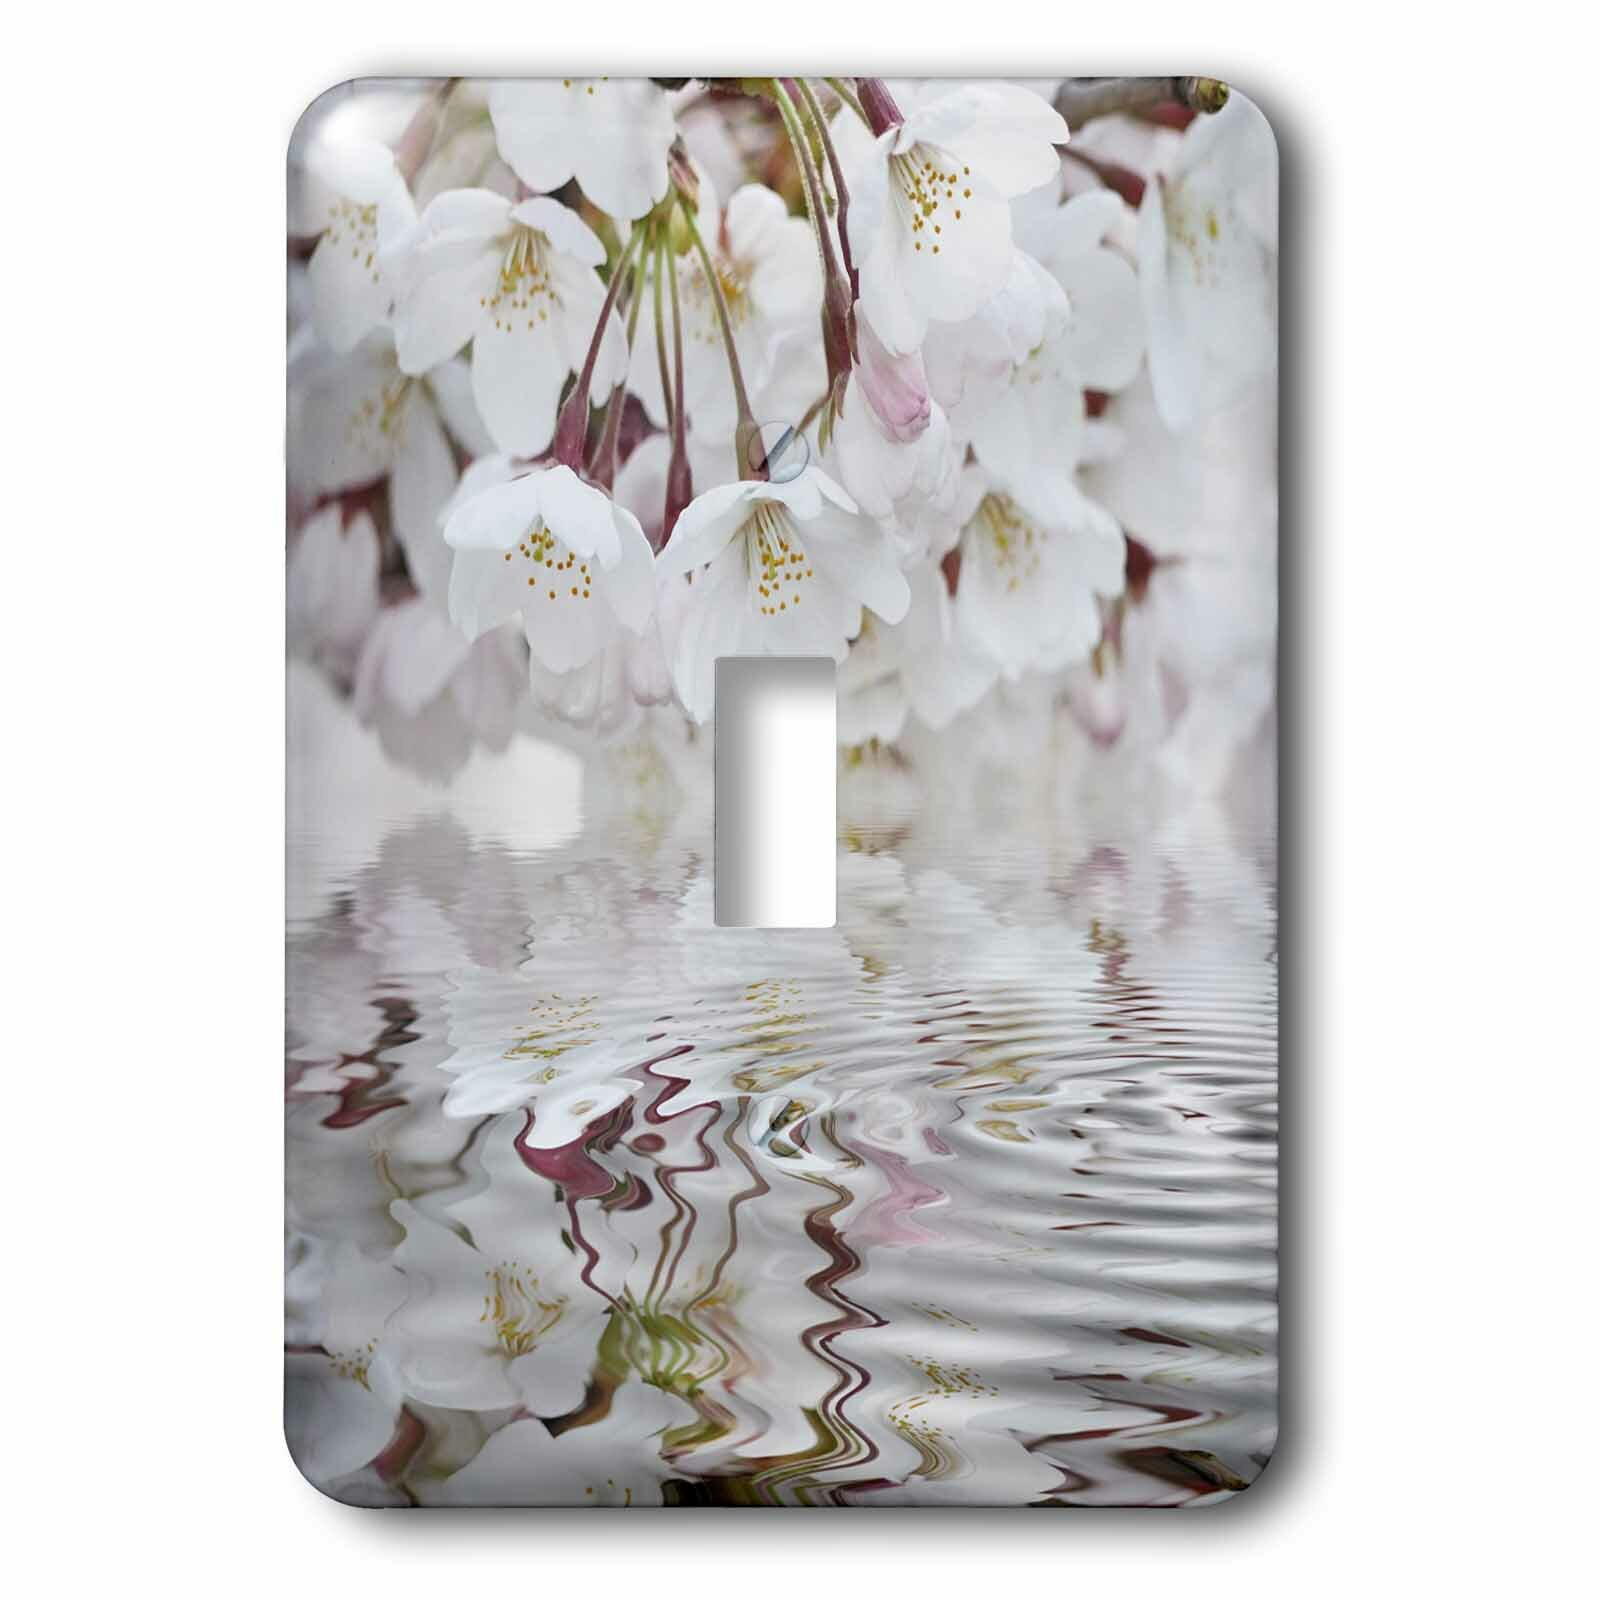 3drose Cherry Blossom And Water 1 Gang Toggle Light Switch Wall Plate Wayfair